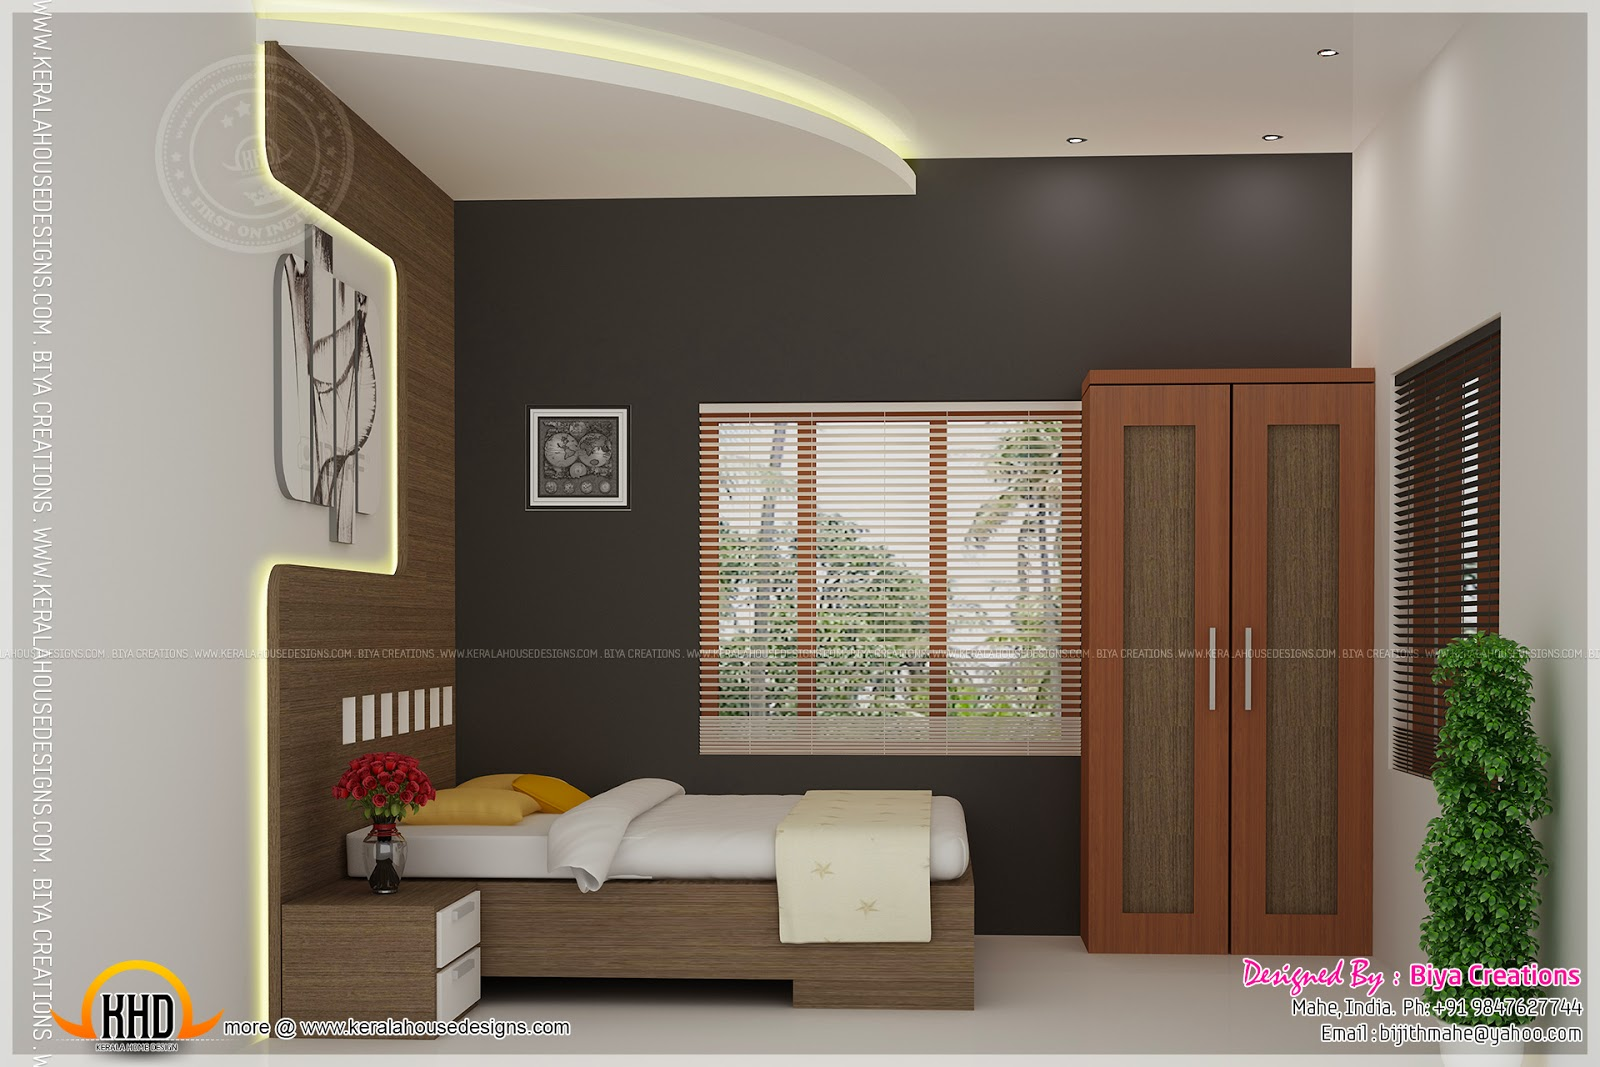 Bedroom kid bedroom and kitchen interior kerala home for Home interior design india